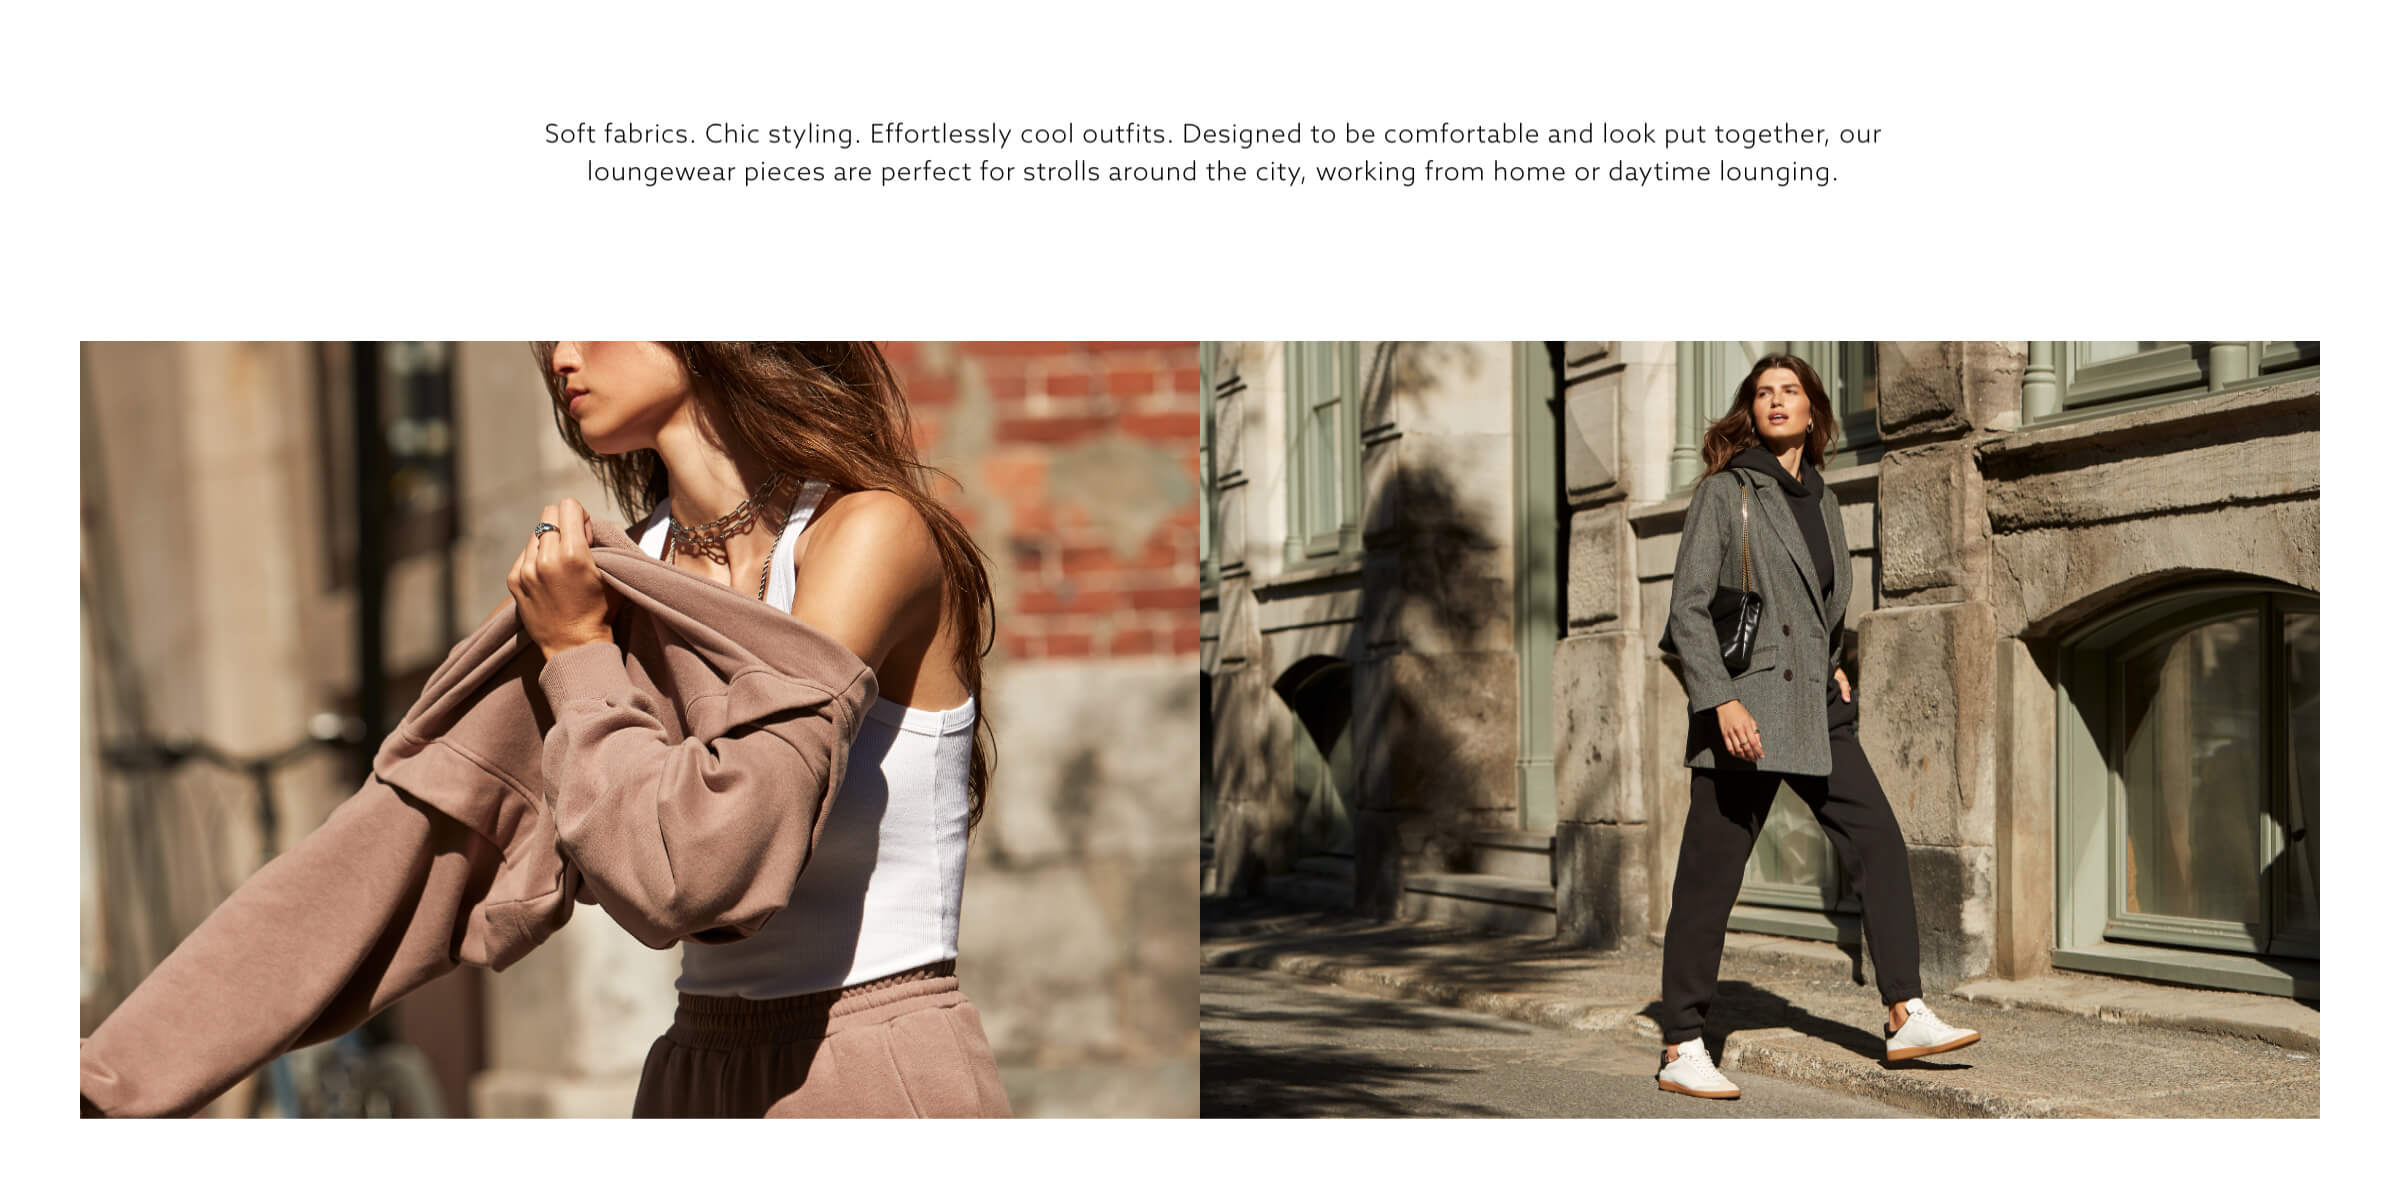 Soft fabrics. Chic styling. Effortlessly cool outfits. Designed to be comfortable and look put together, our loungewear pieces are perfect for strolls around the city, working from home or daytime lounging.